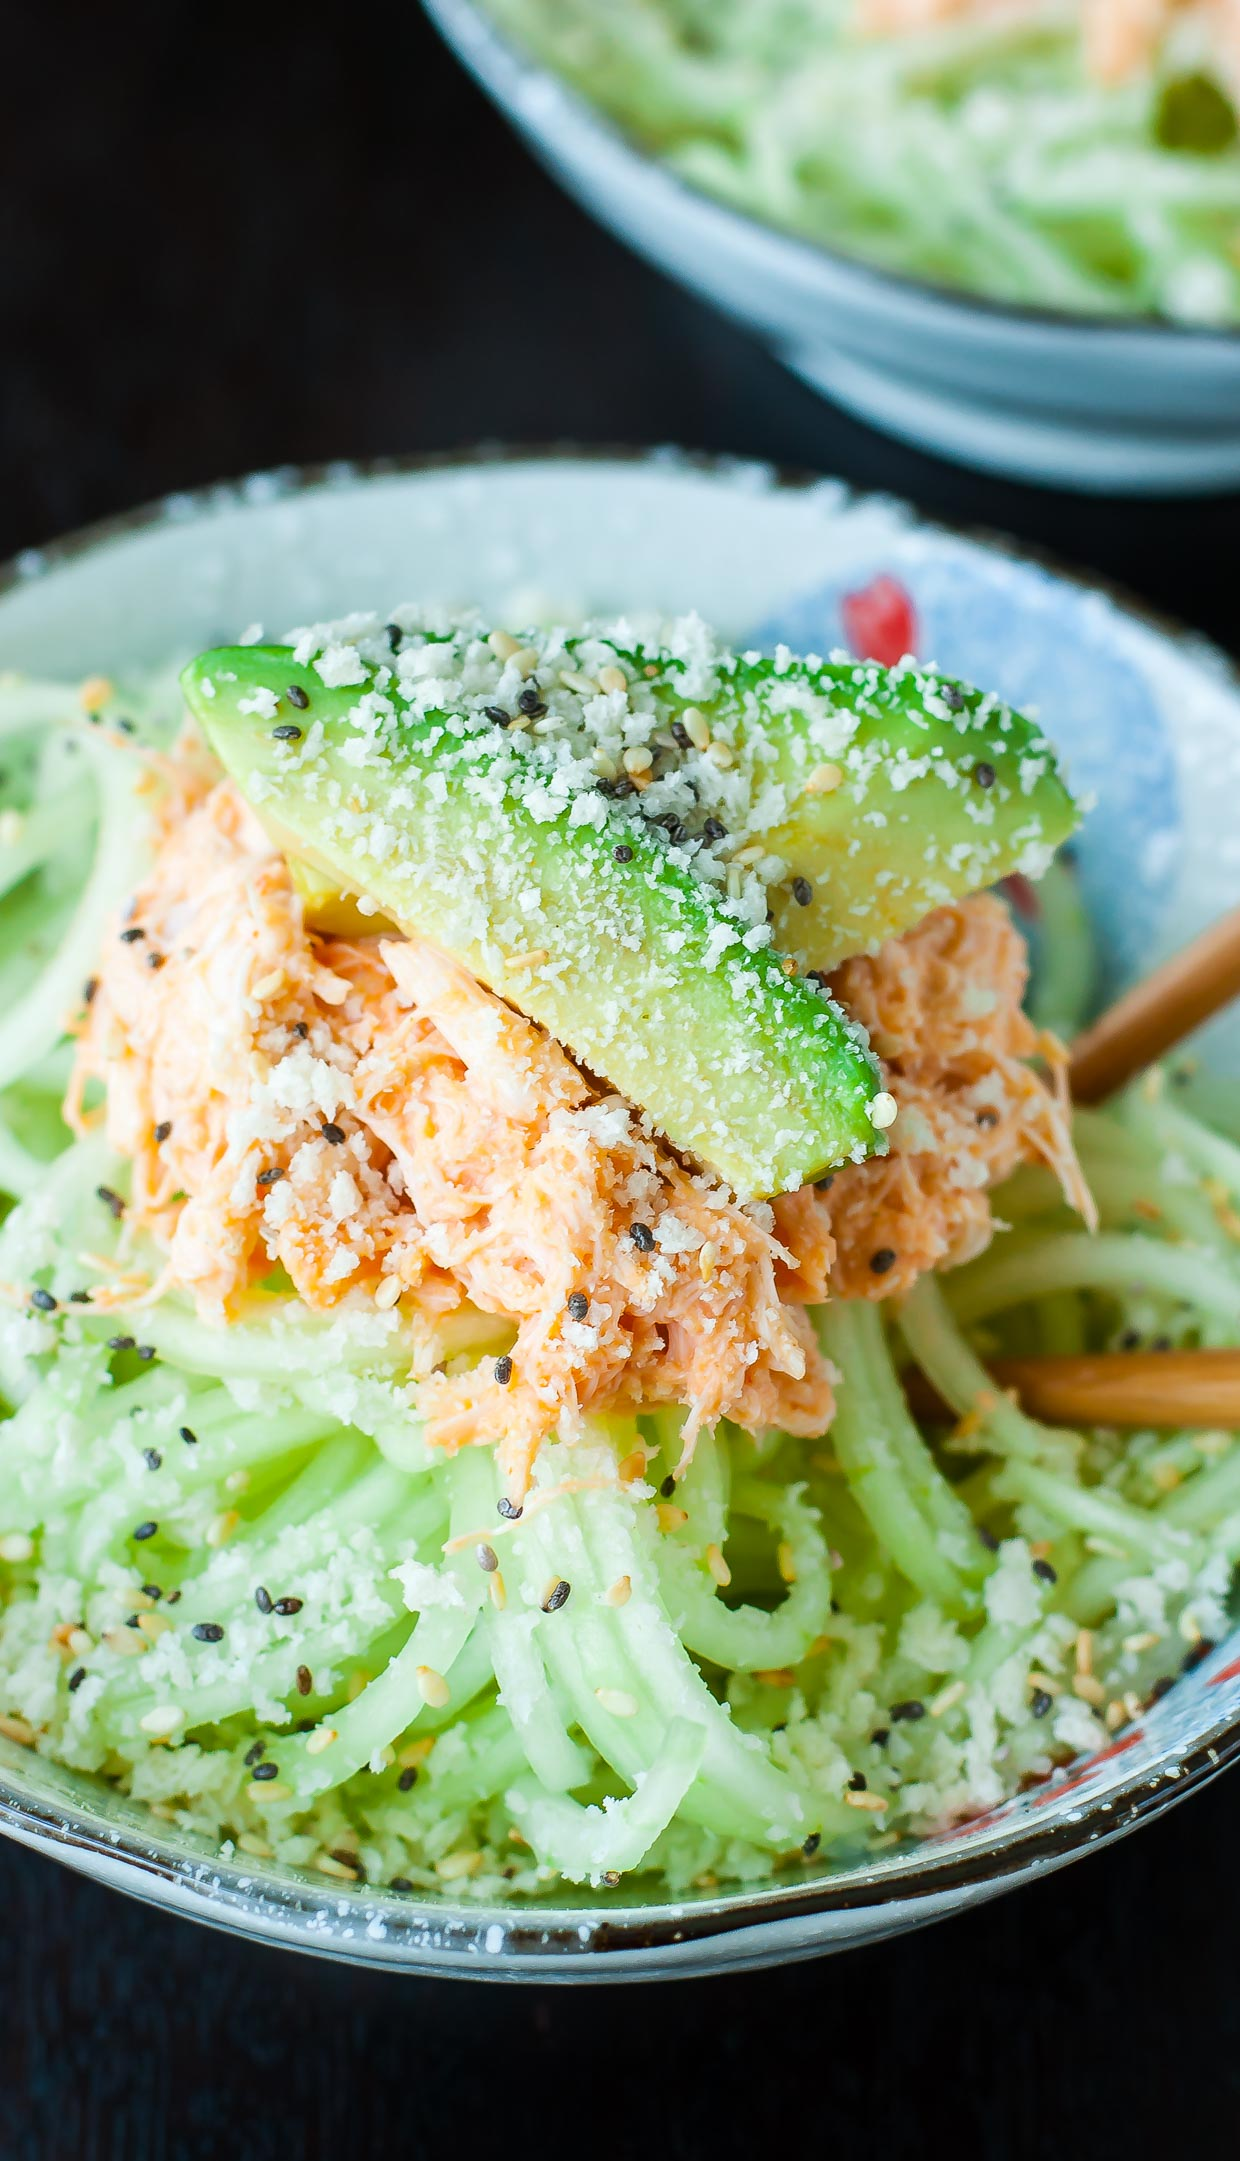 This Spicy Sriracha Crab and Cucumber Salad is refreshing and flavorful!This Japanese-inspired kani salad is my absolute favorite sushi restaurant appetizer. #crab #seafood #pescatarian #healthy #spiralized #spiralizer #cucumber #avocado #sriracha #restaruantcopycat